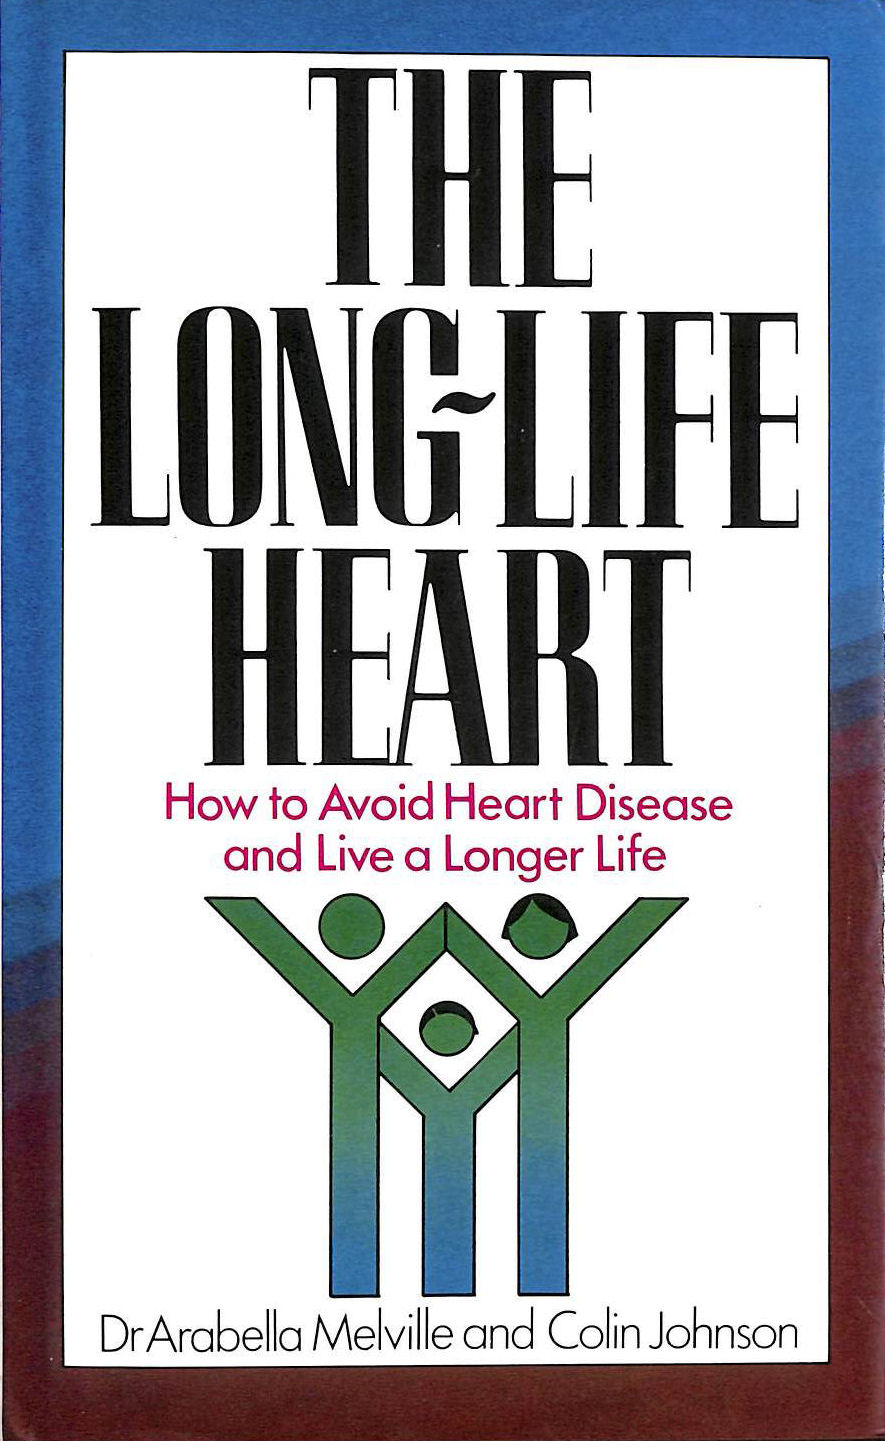 Image for Long Life Heart: How to Avoid Heart Disease and Live a Longer Life